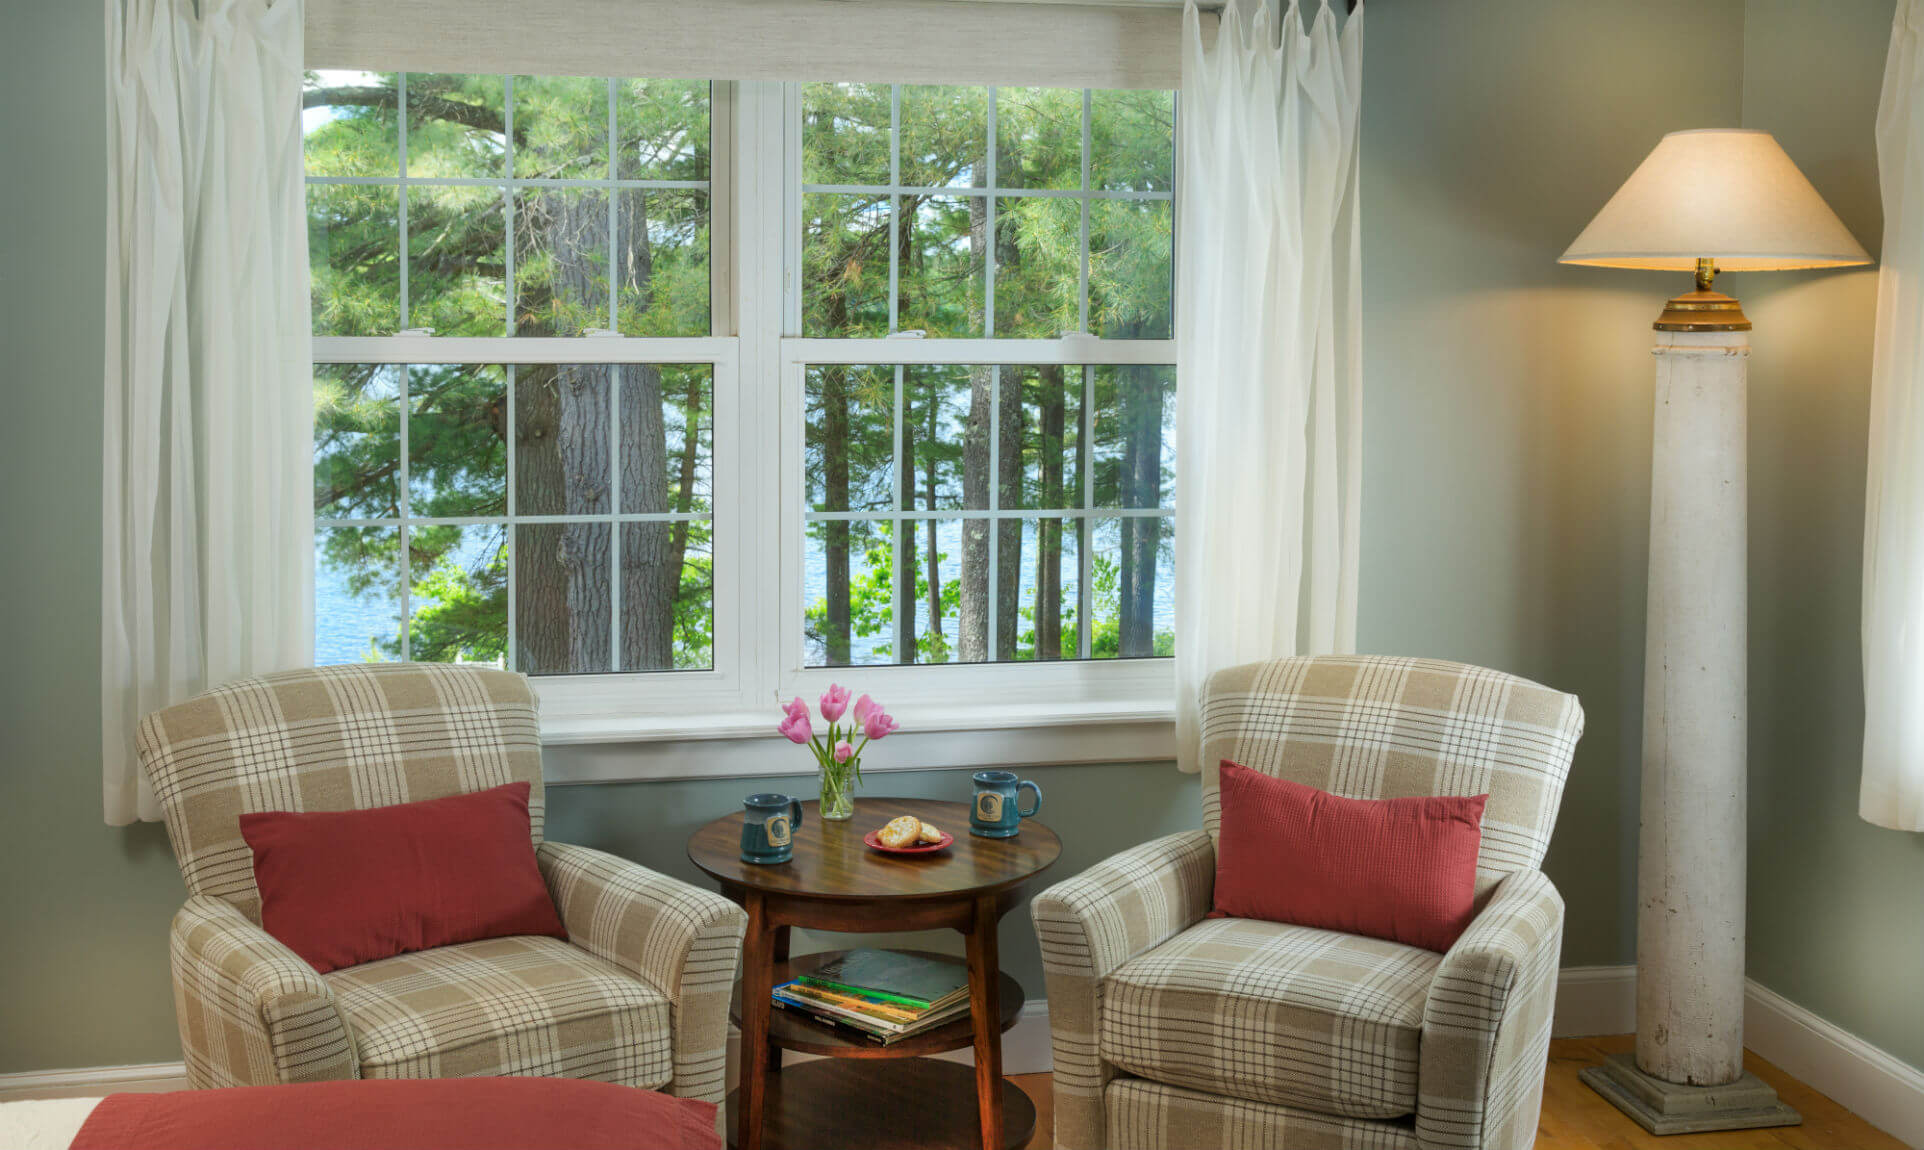 Sitting area with plush chairs next to window in the Wolf Cove Inn's Moosehead Lake room